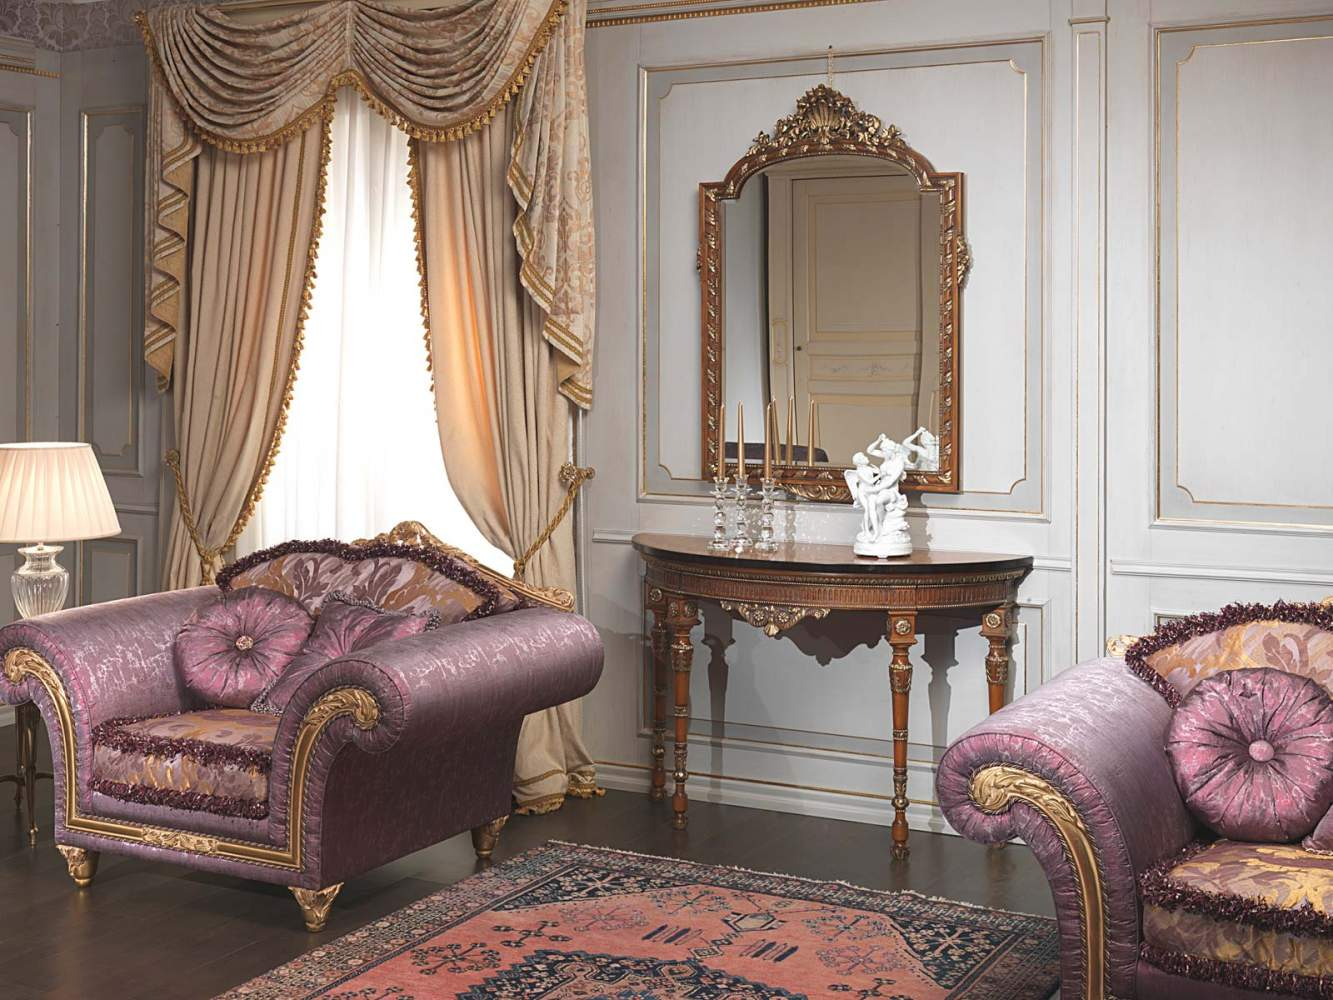 White and gold lacquered boiserie with columns